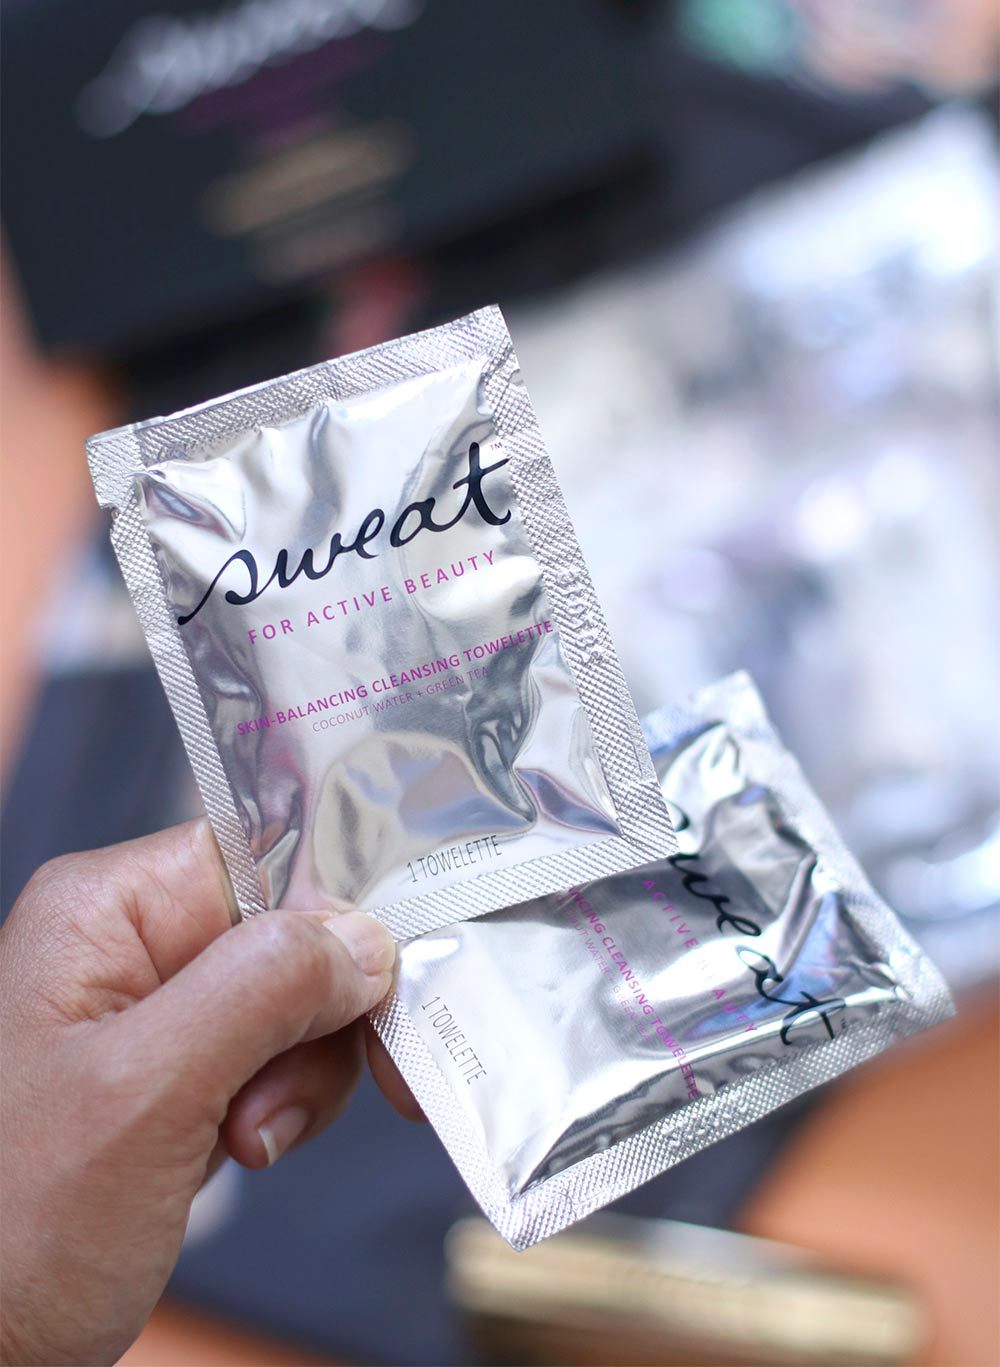 sweat cosmetics skin balancing cleansing towelettes